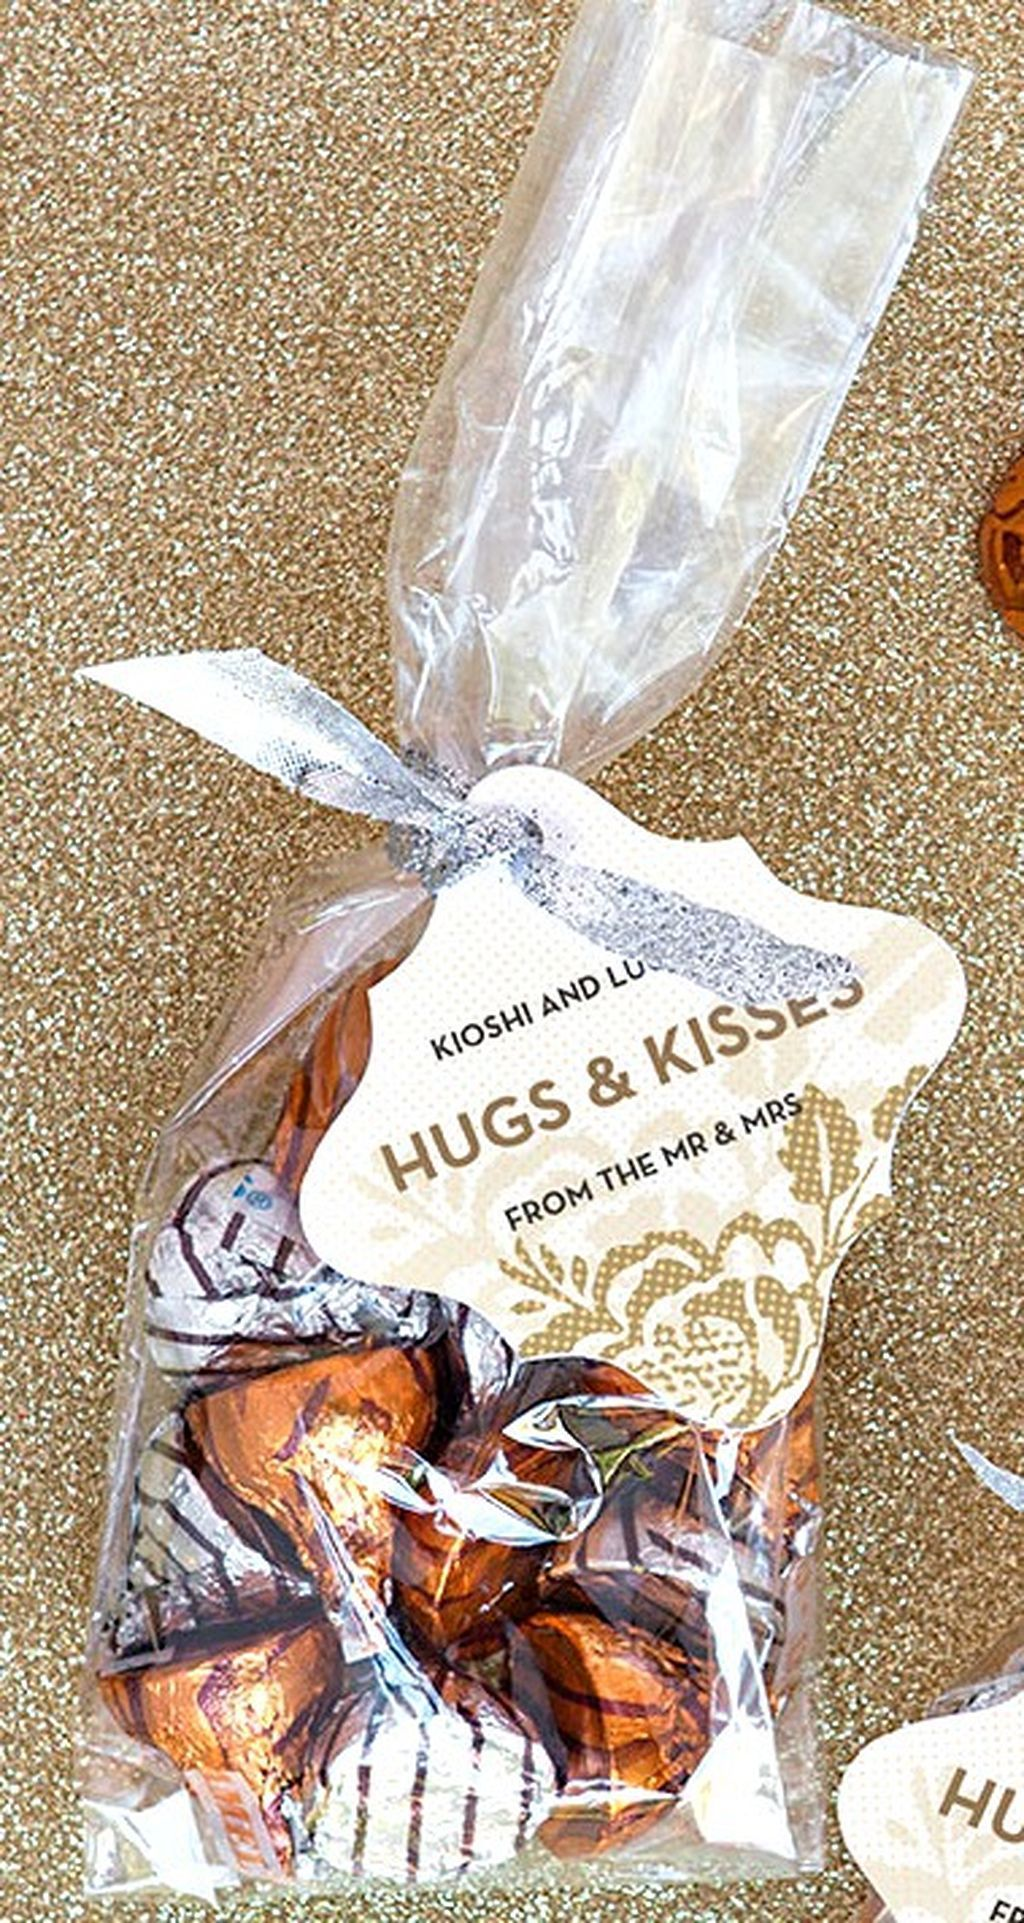 10 the cheapest wedding favors ideas 12 | Favors, Weddings and Wedding